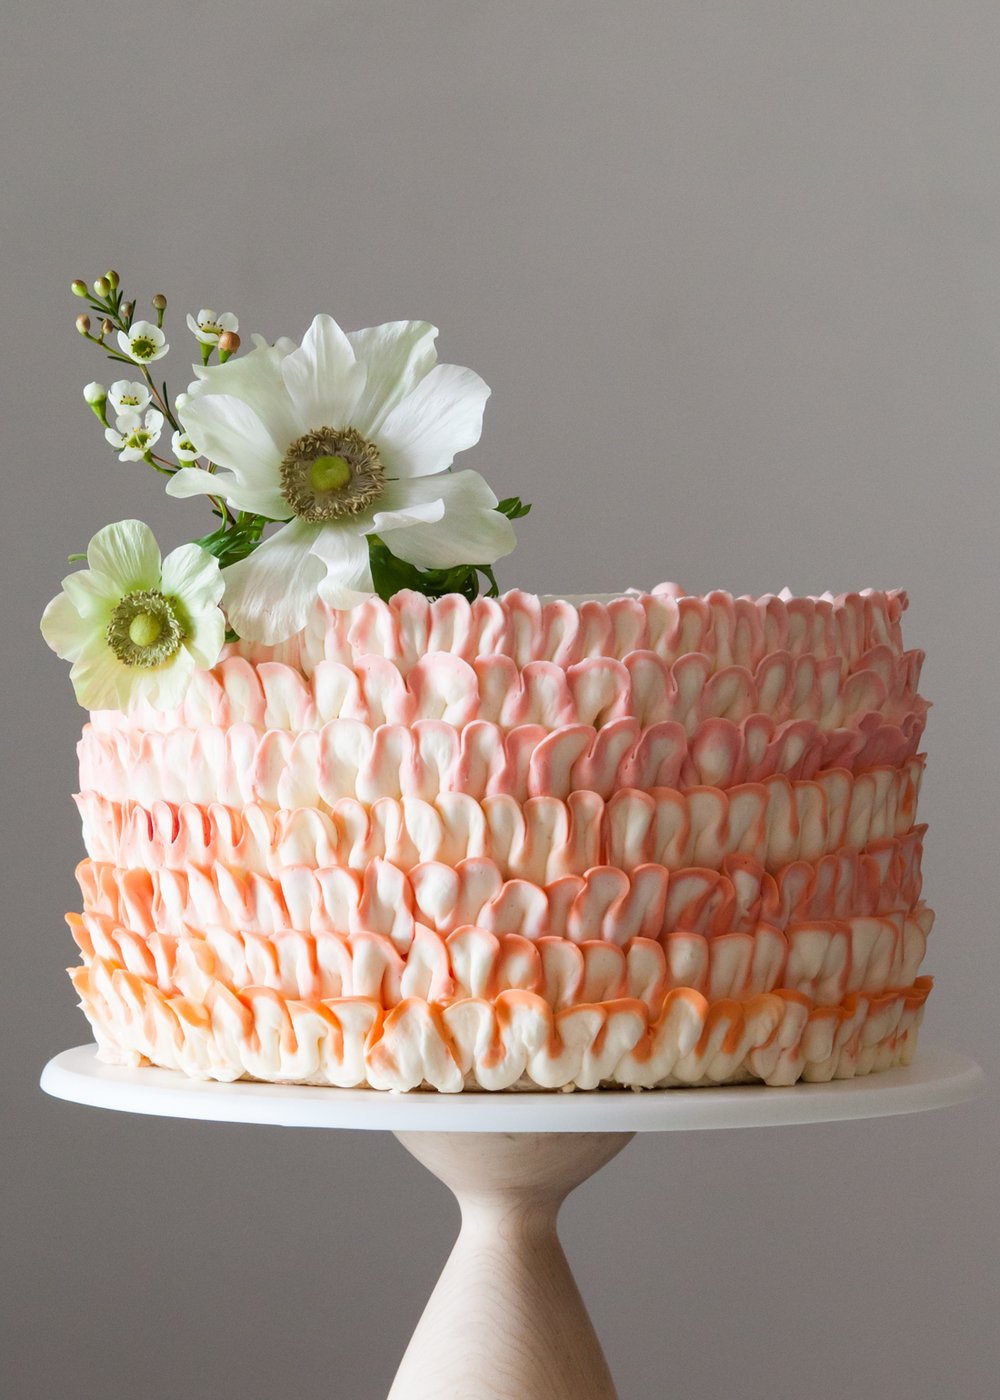 How To Make A Two Toned Ruffle Cake